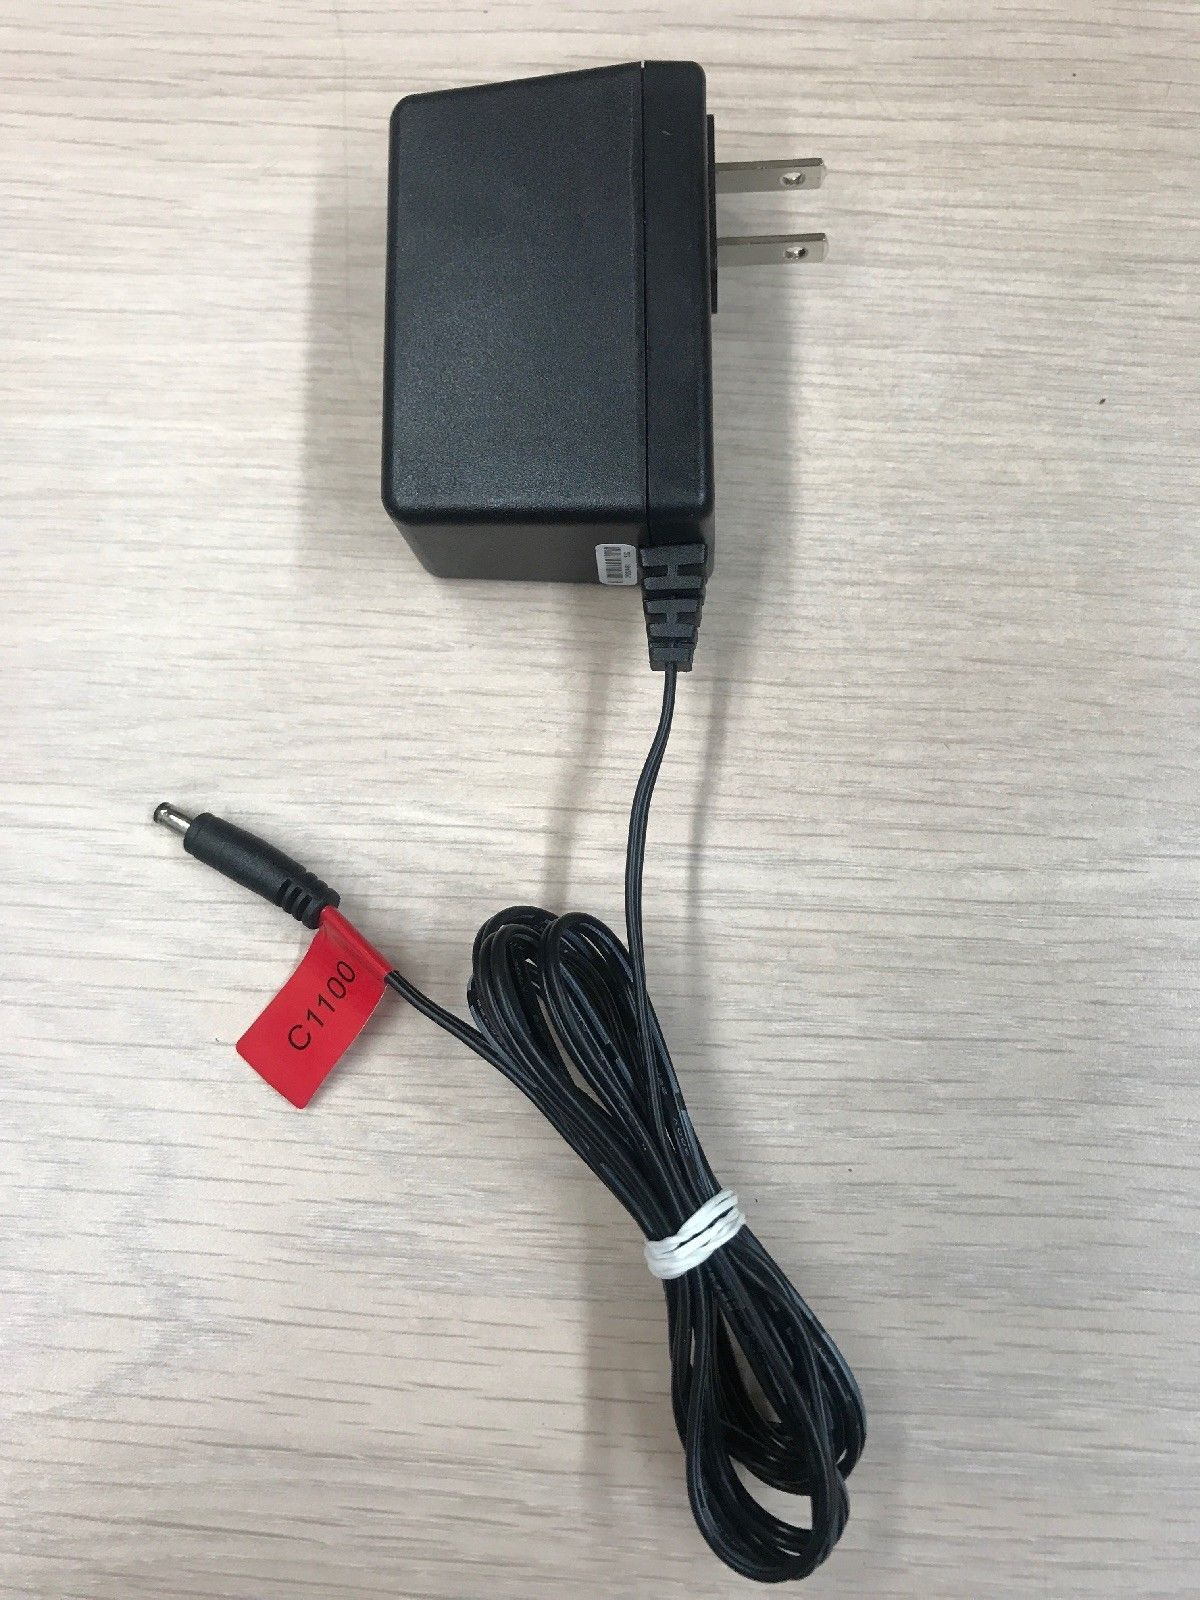 UMEC UP0181G-12PA AC Power Supply Adapter Tested & Cleaned 12V 1.5A.       (T5)